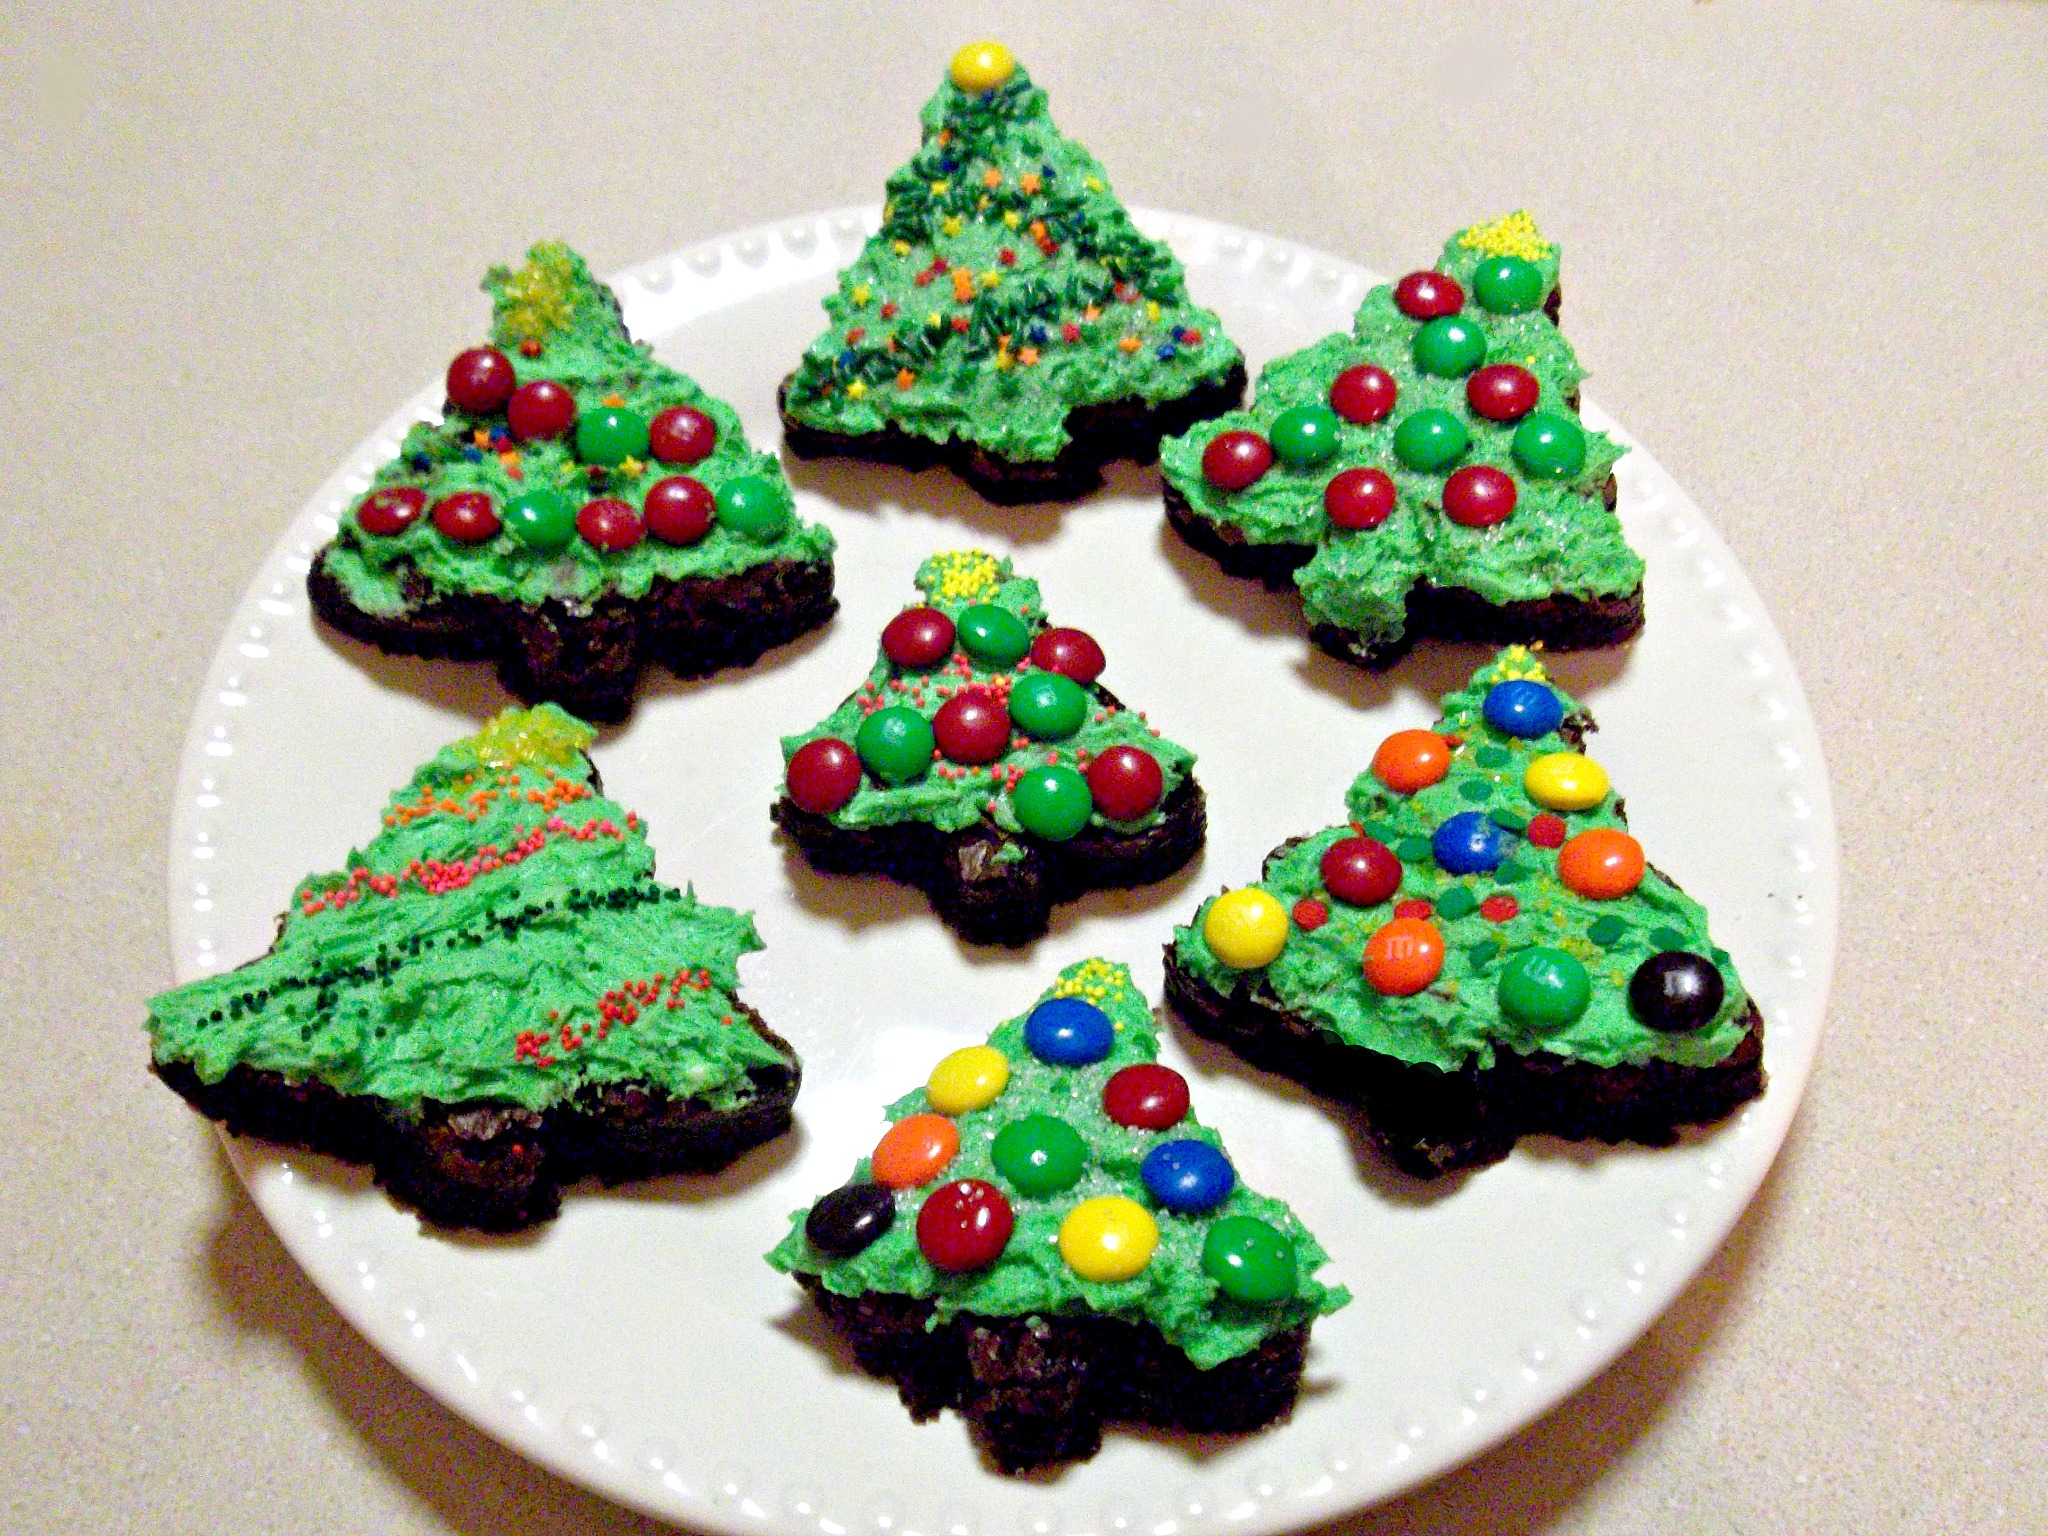 Christmas Tree Brownies.Christmas Tree Brownies With Buttercream Frosting Love To